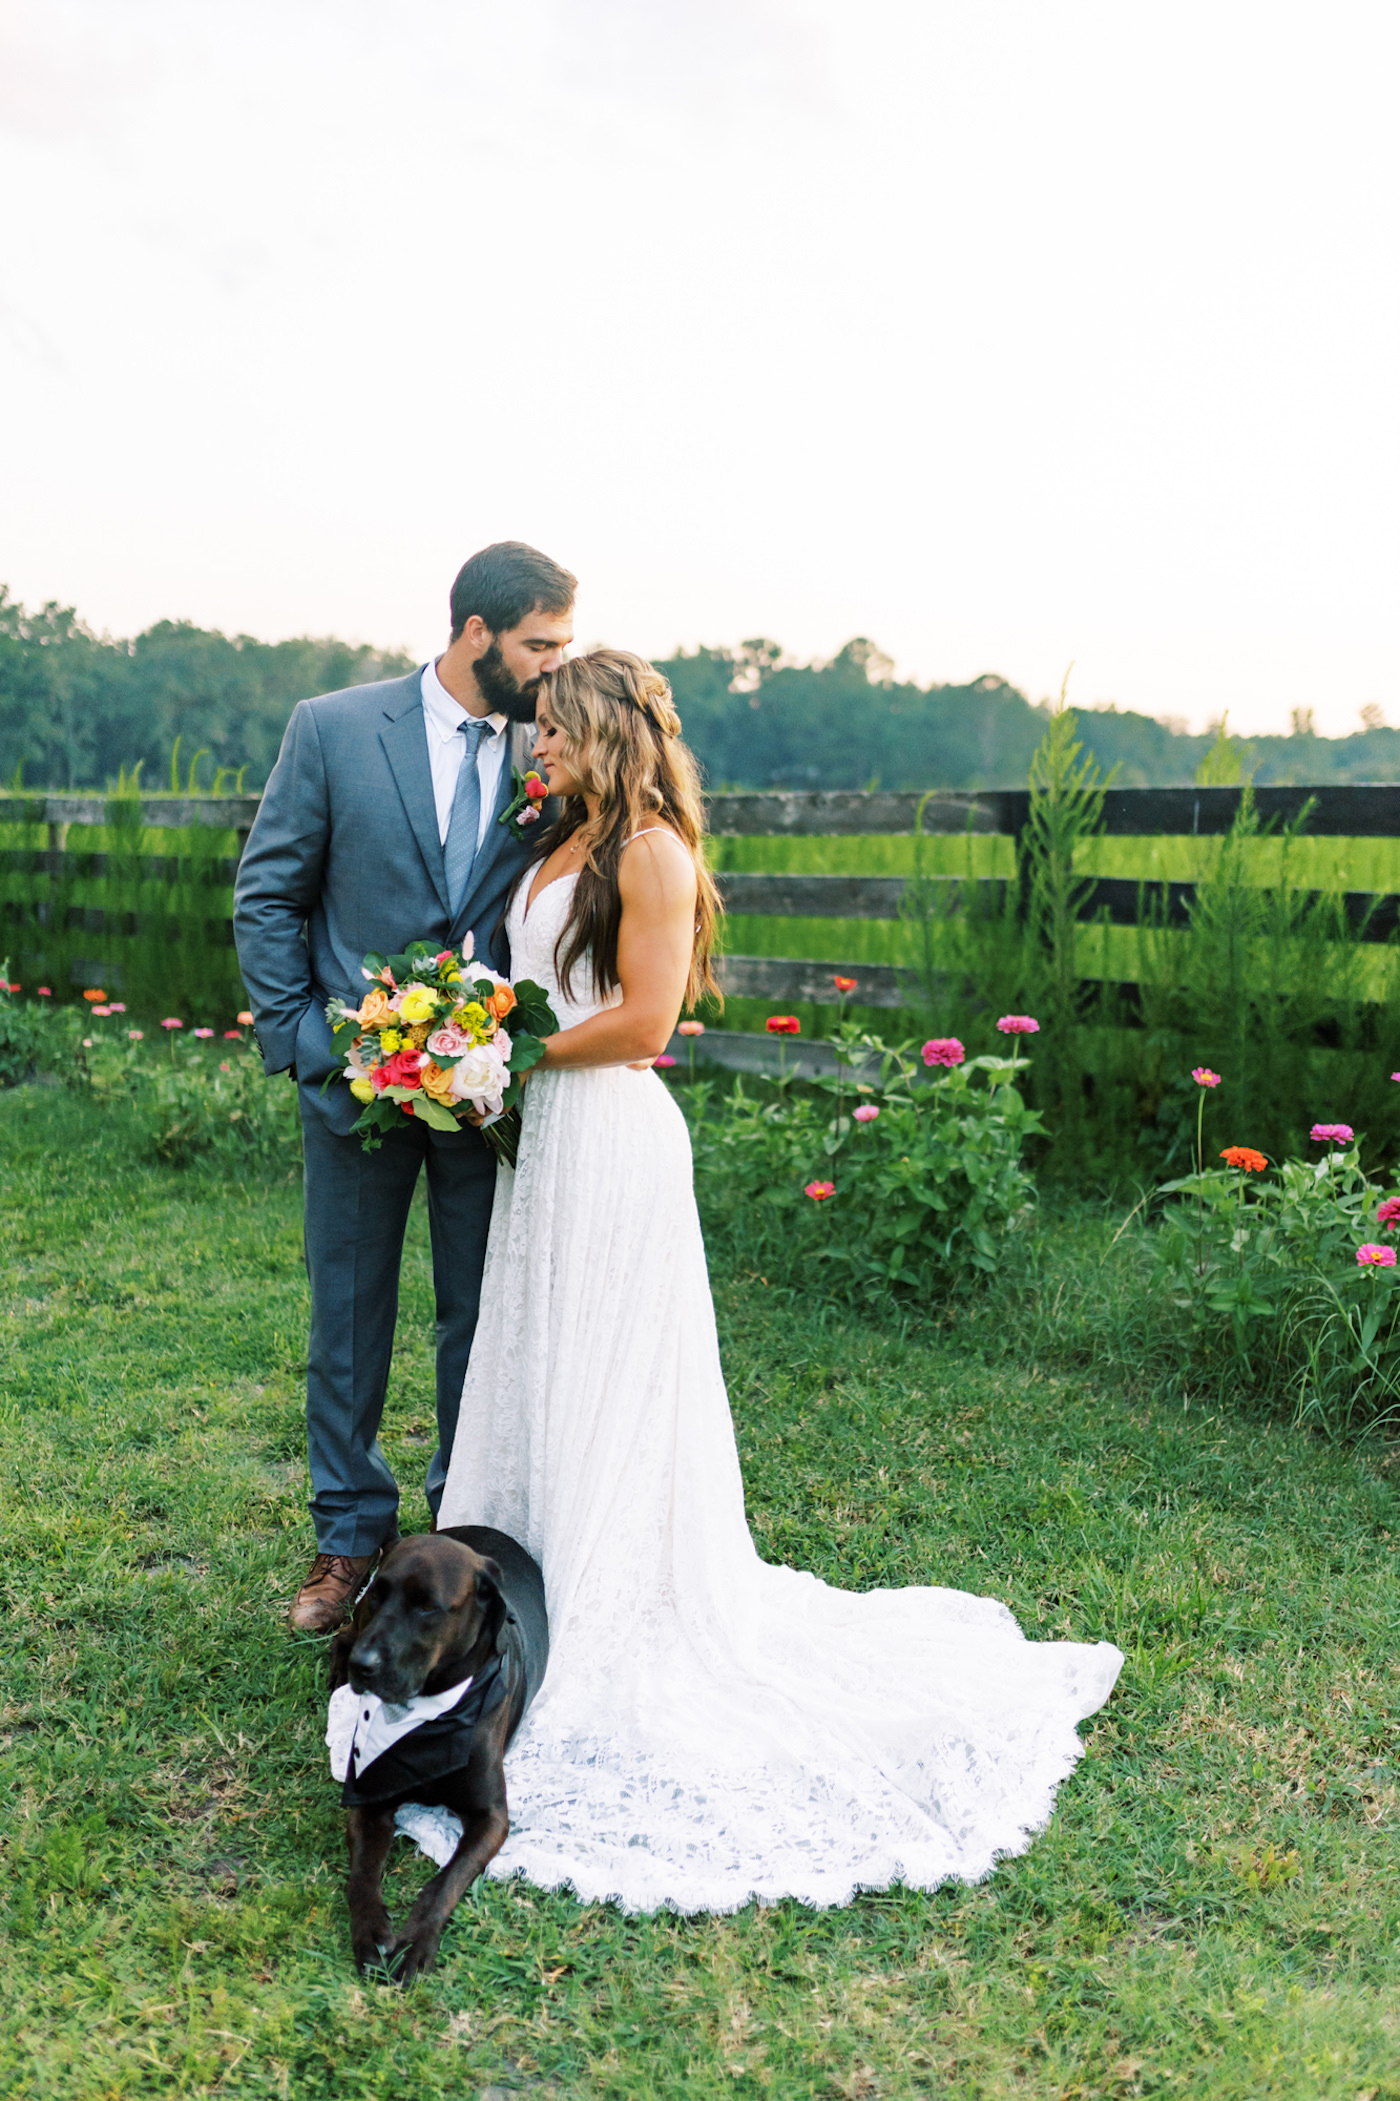 Bright Colorful Florida Citrus Wedding Inspiration | Bridal Bouquet with Pink Orange and Yellow Roses | Groom in Grey Suit with Grey Neck Tie | Wedding Dog of Honor with Bow Tie Collar | Outdoor Bride and Groom Portrait